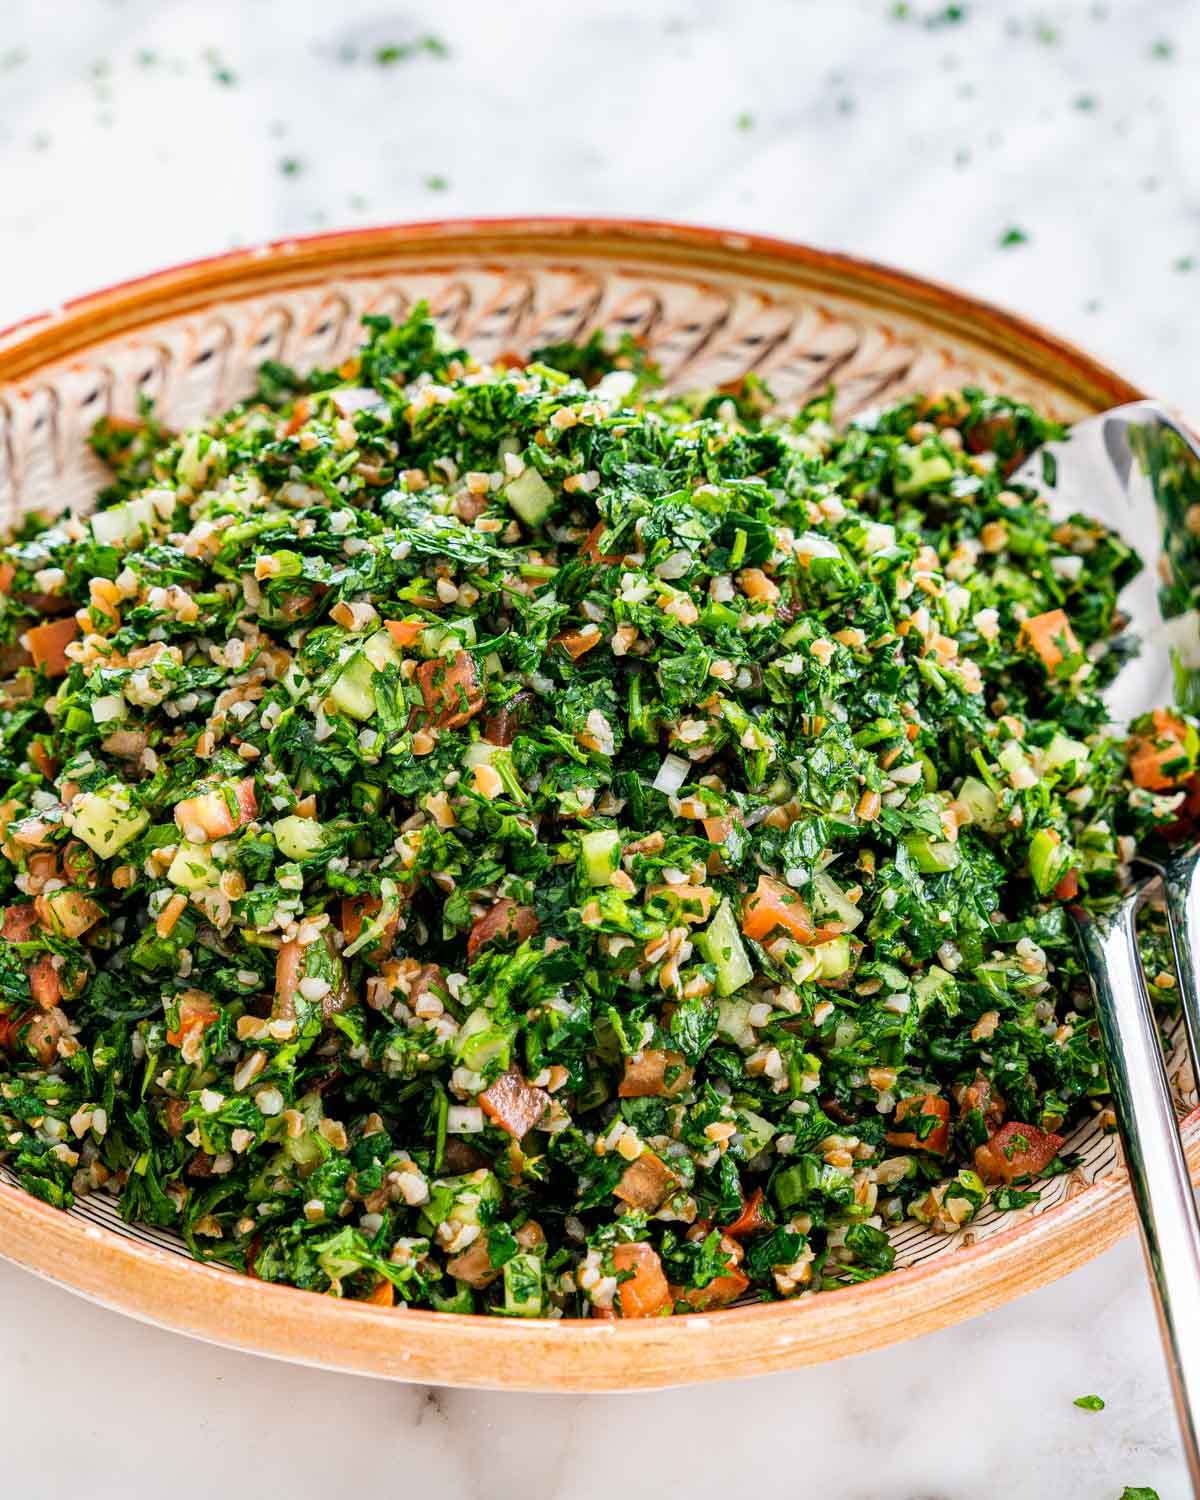 tabbouleh salad in a plate with two serving spoons in it